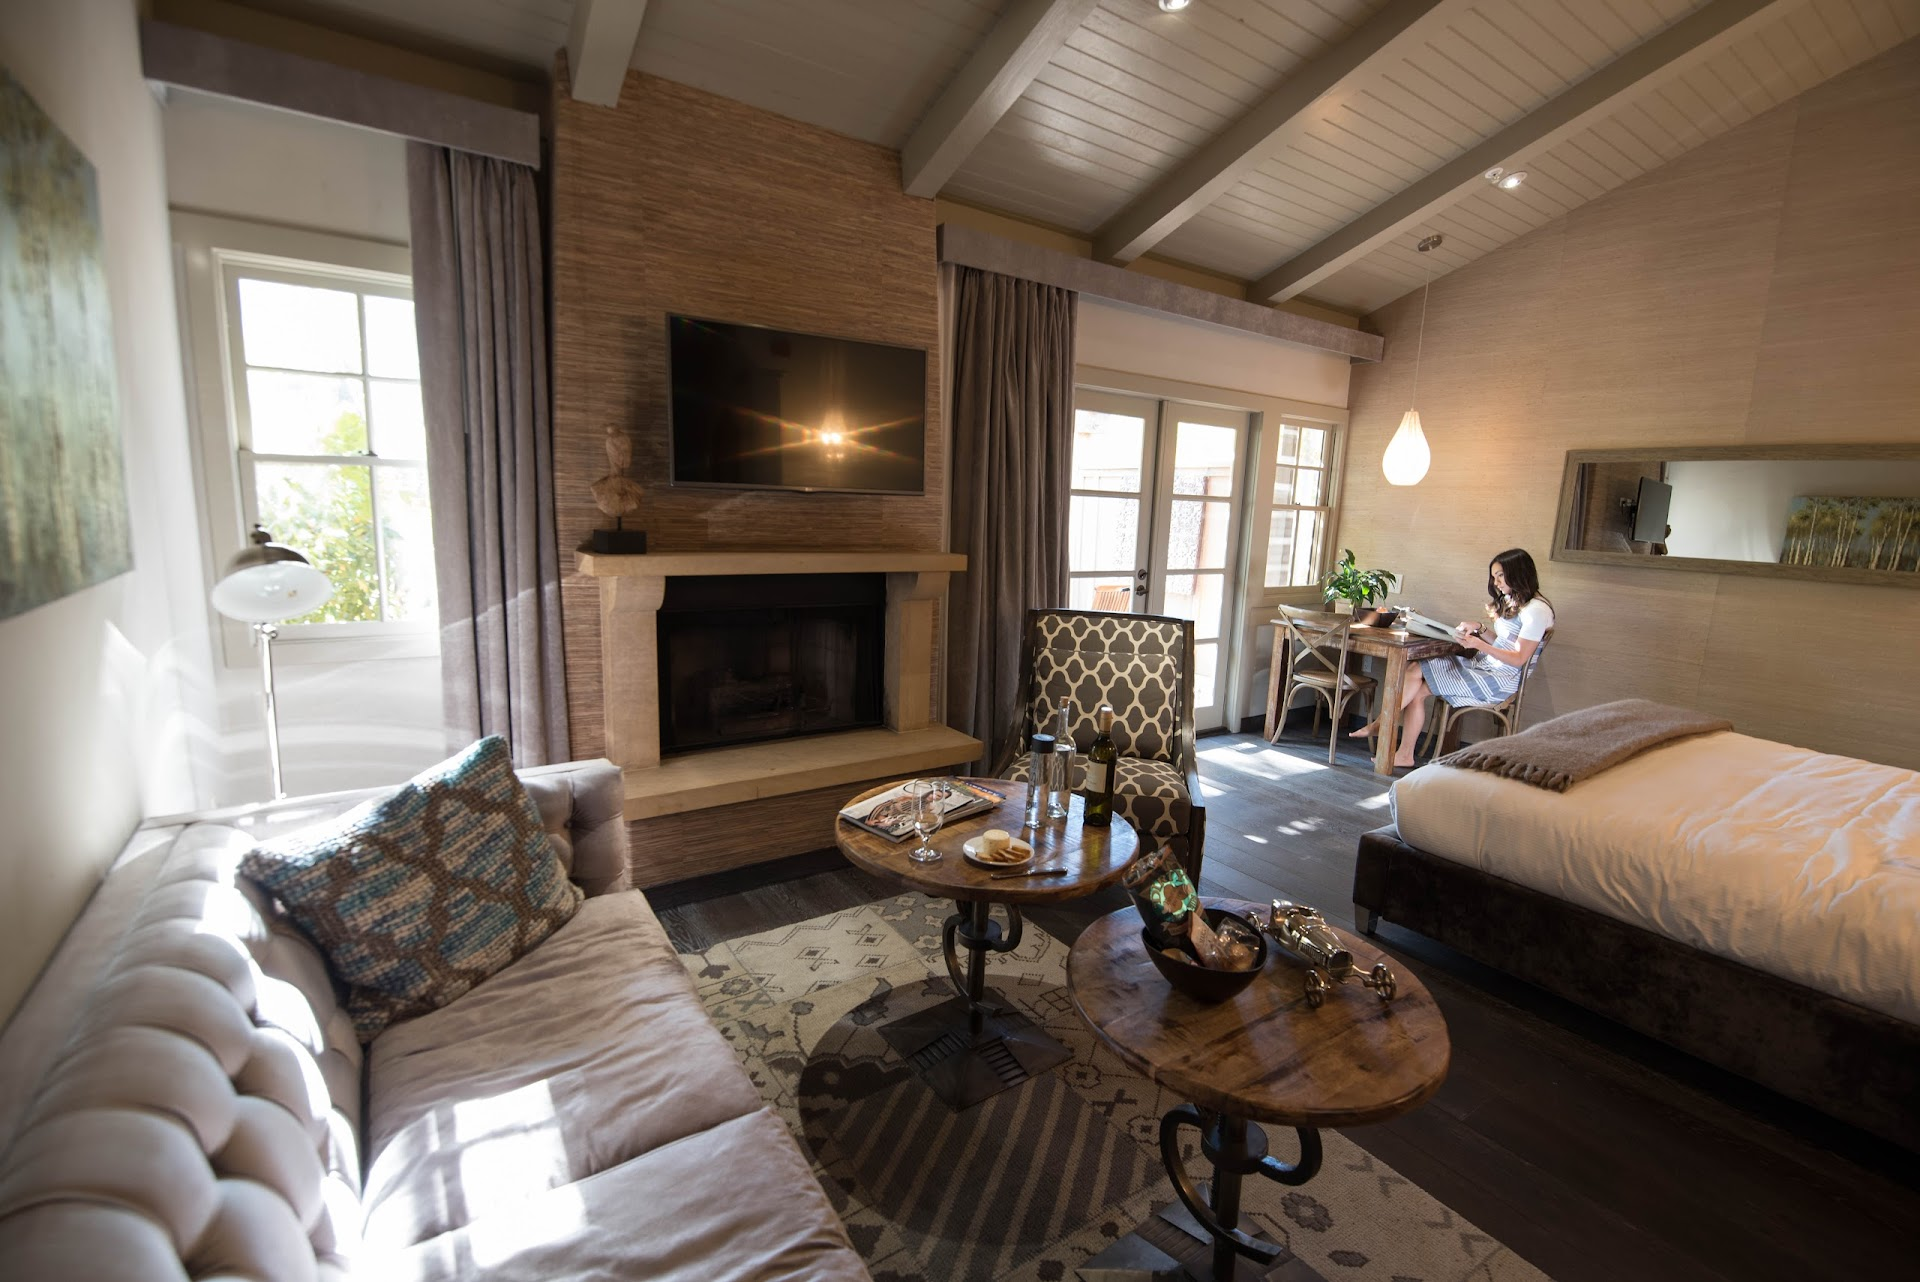 carmel valley, bernardus lodge and spa review, amex platinum, american express platinum, fine hotels and resorts, luxury travel blogger, monterey, central coast, big sur, best hotels in monterey, california travel, couple